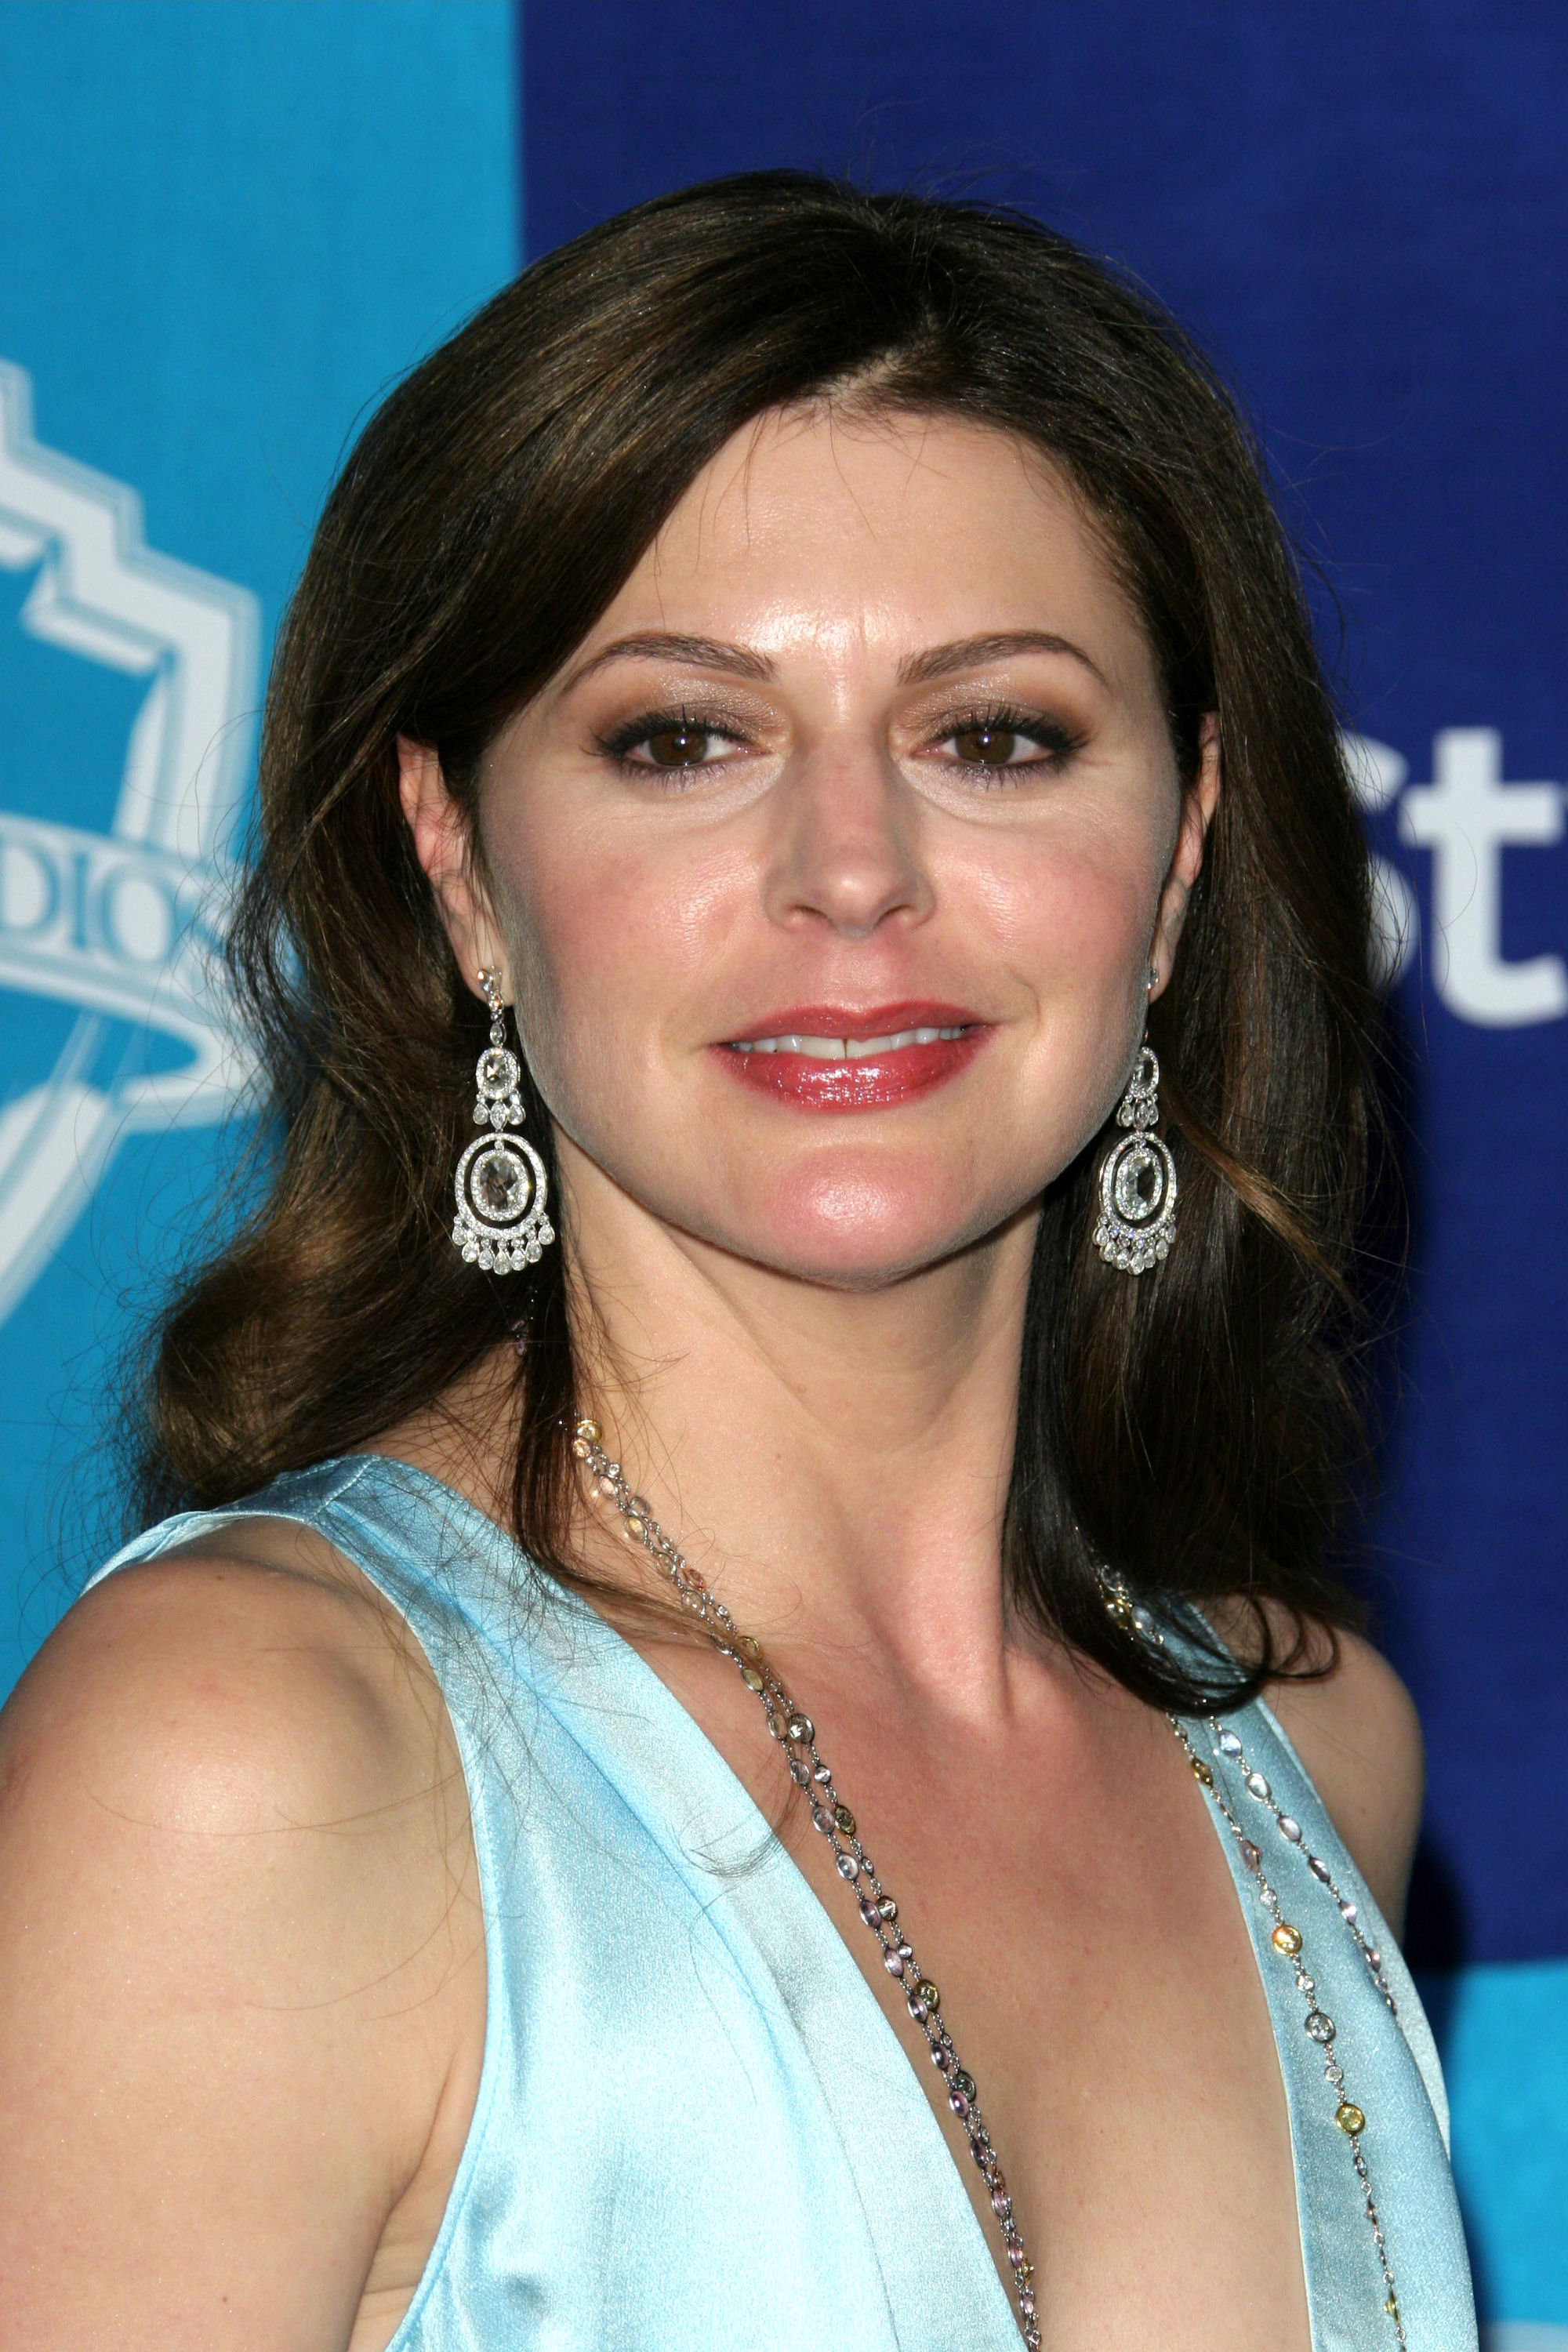 Poze <b>Jane Leeves</b> - jane-leeves-155579l